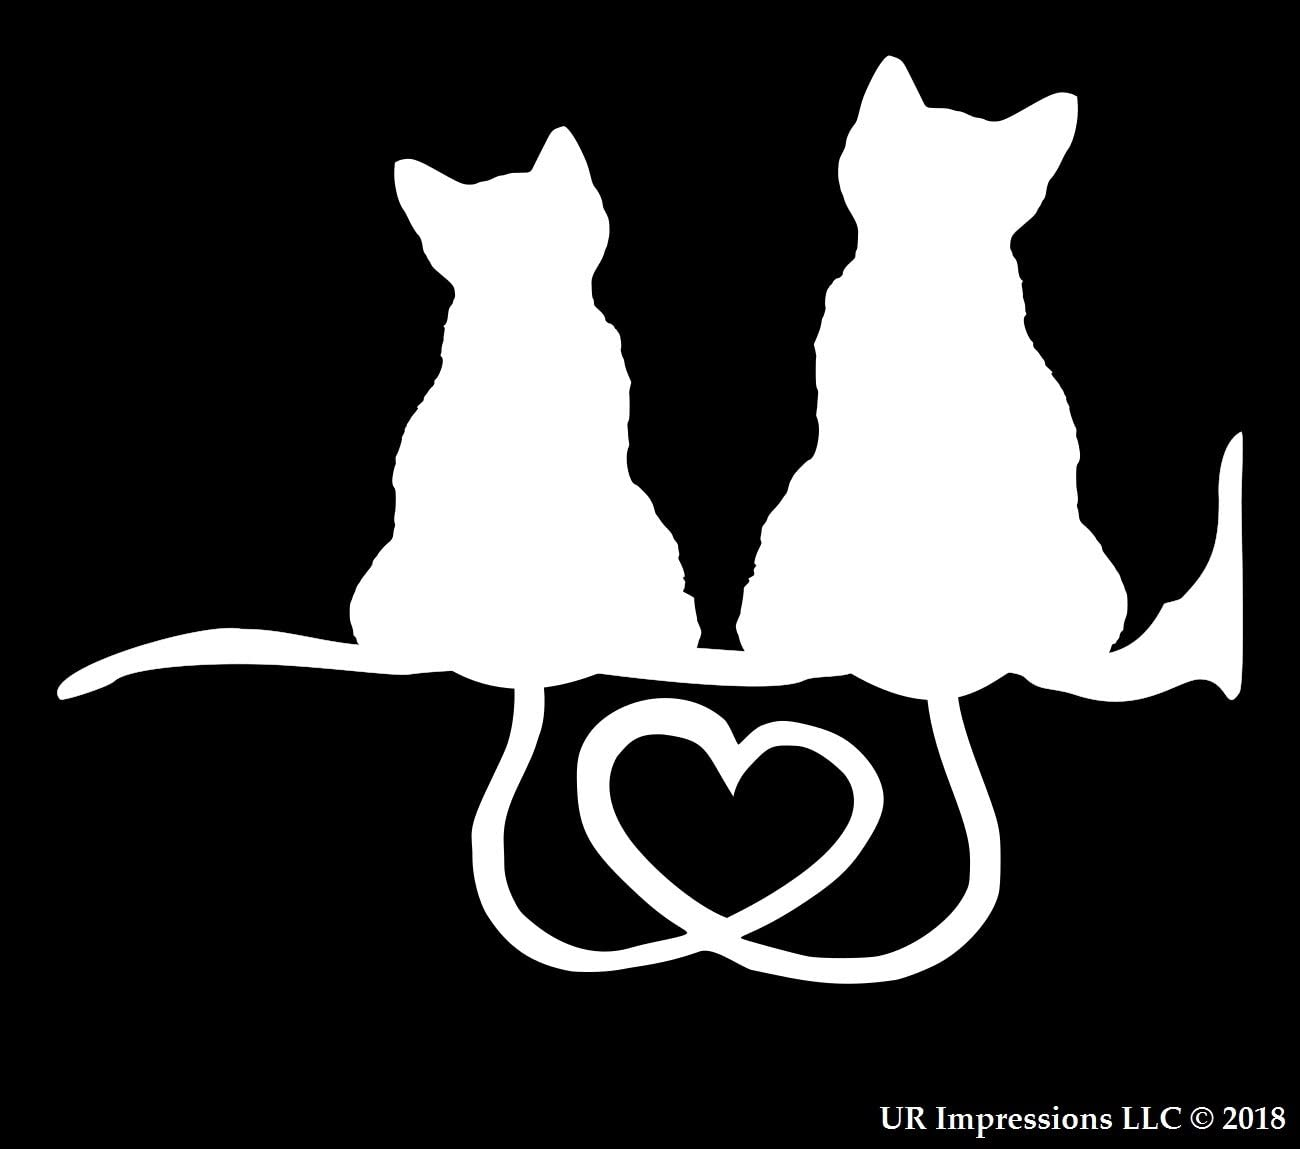 UR Impressions Kitty Cat Heart Tails Decal Vinyl Sticker Graphics for Cars Trucks SUV Vans Walls Windows Laptop|White|5.5 X 3.5 Inch|URI143